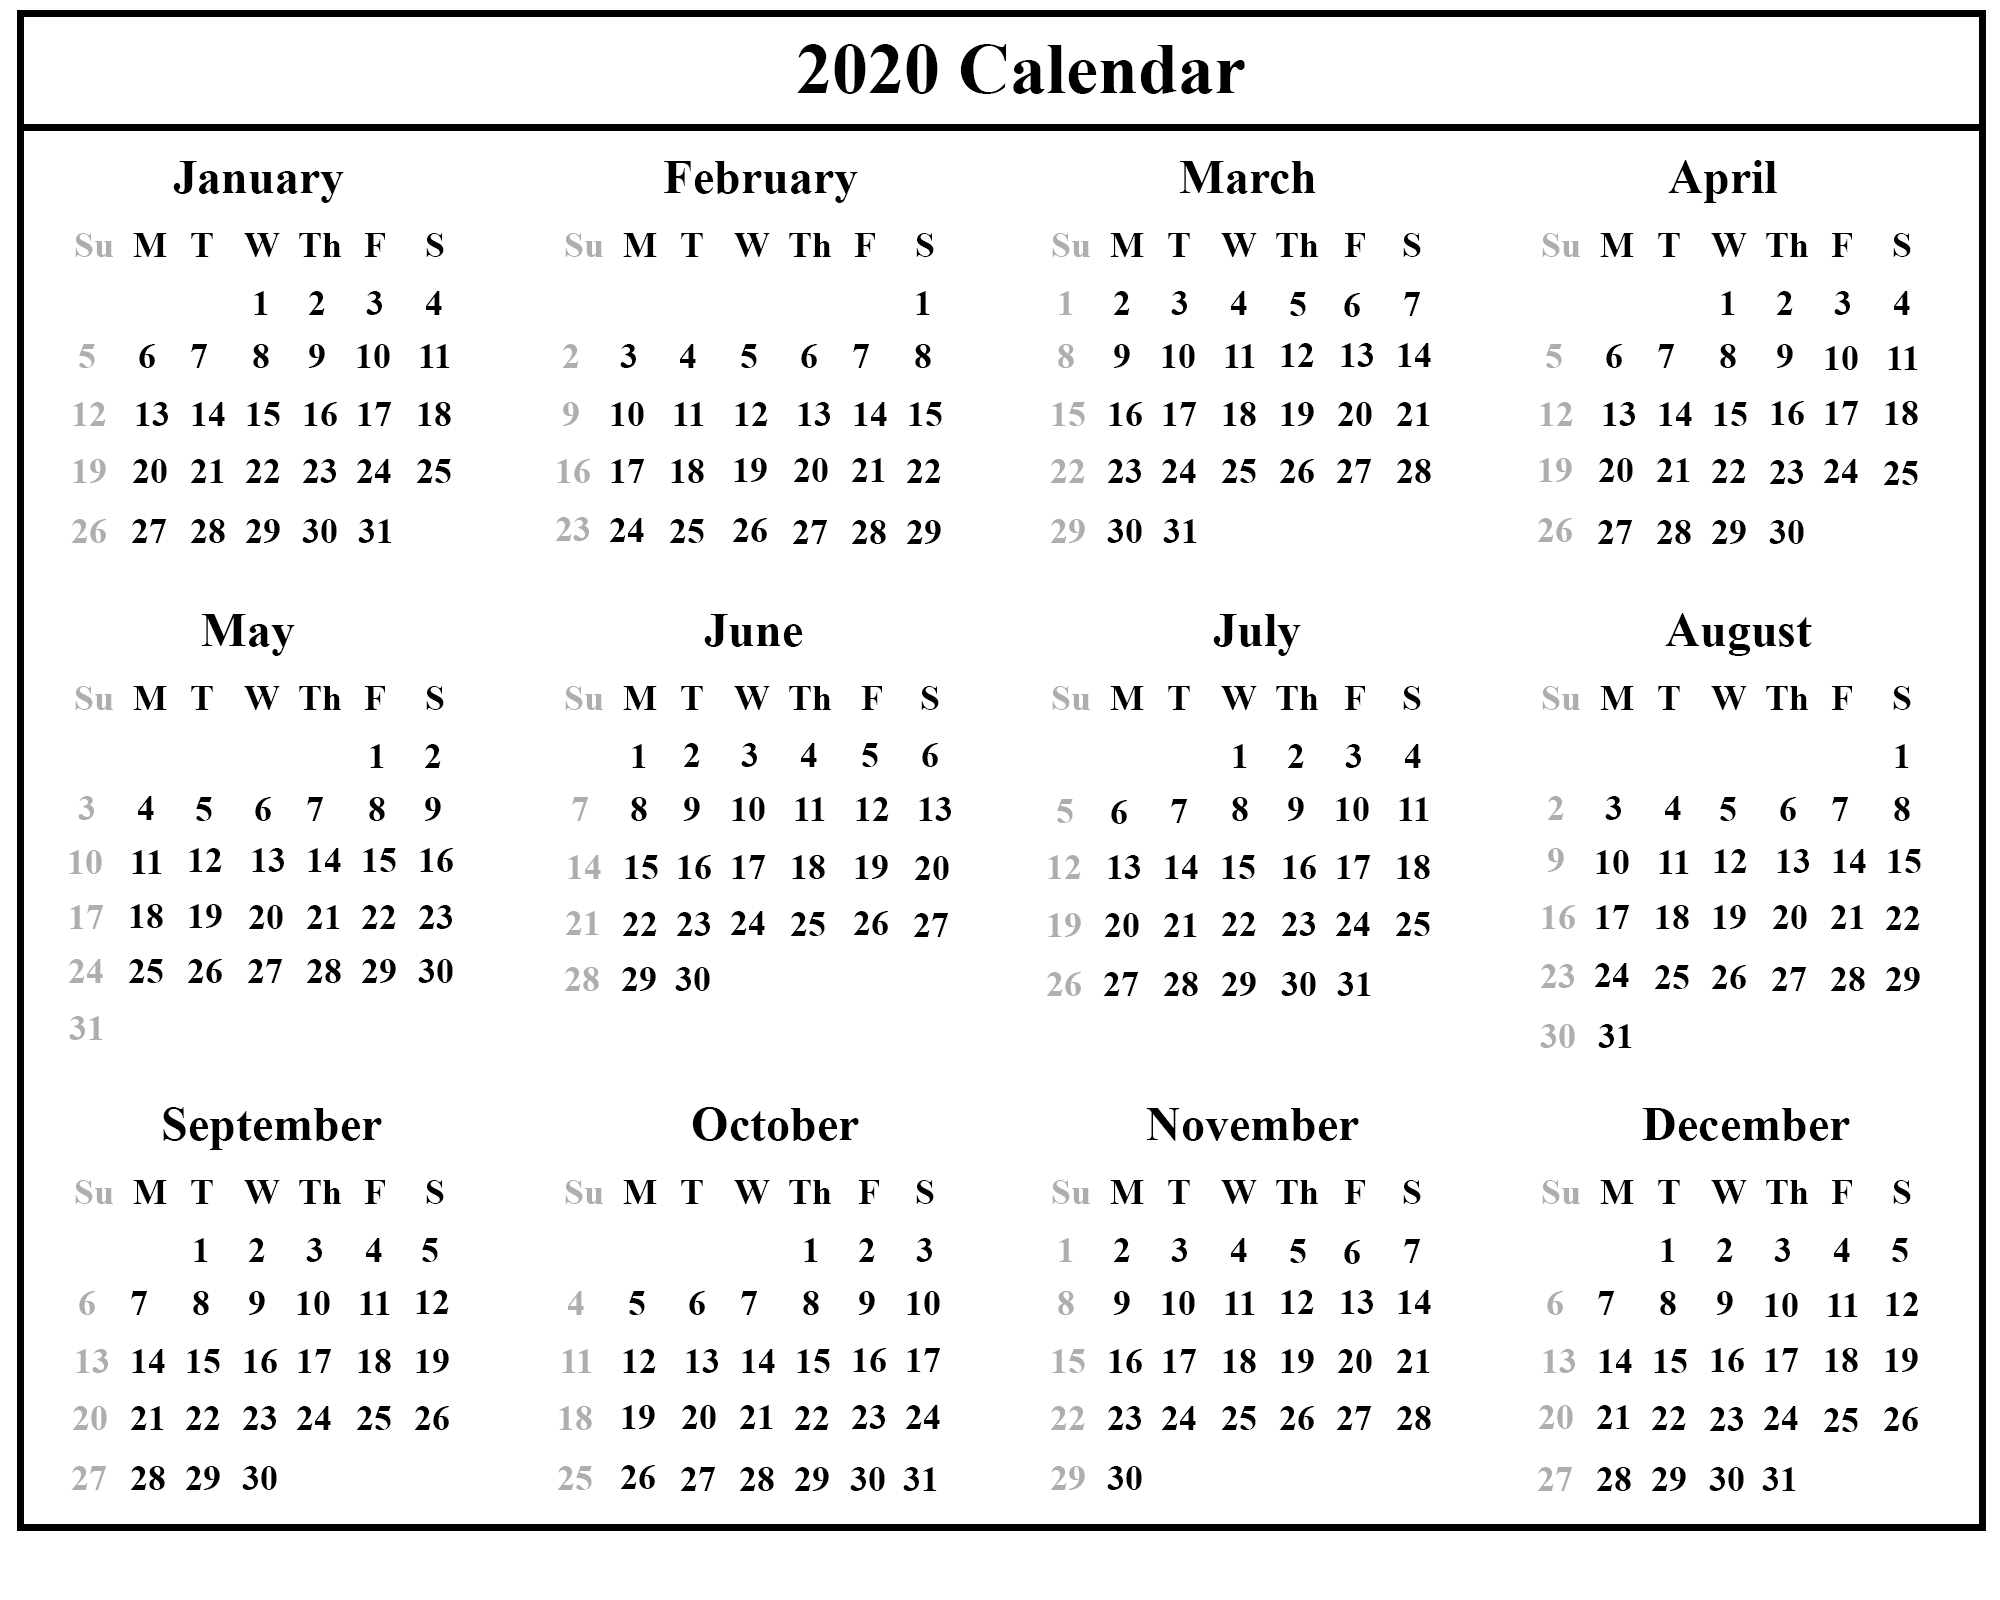 12 Month 2020 Printable Calendar Template With Holidays-Blank W 9 To Print 2020